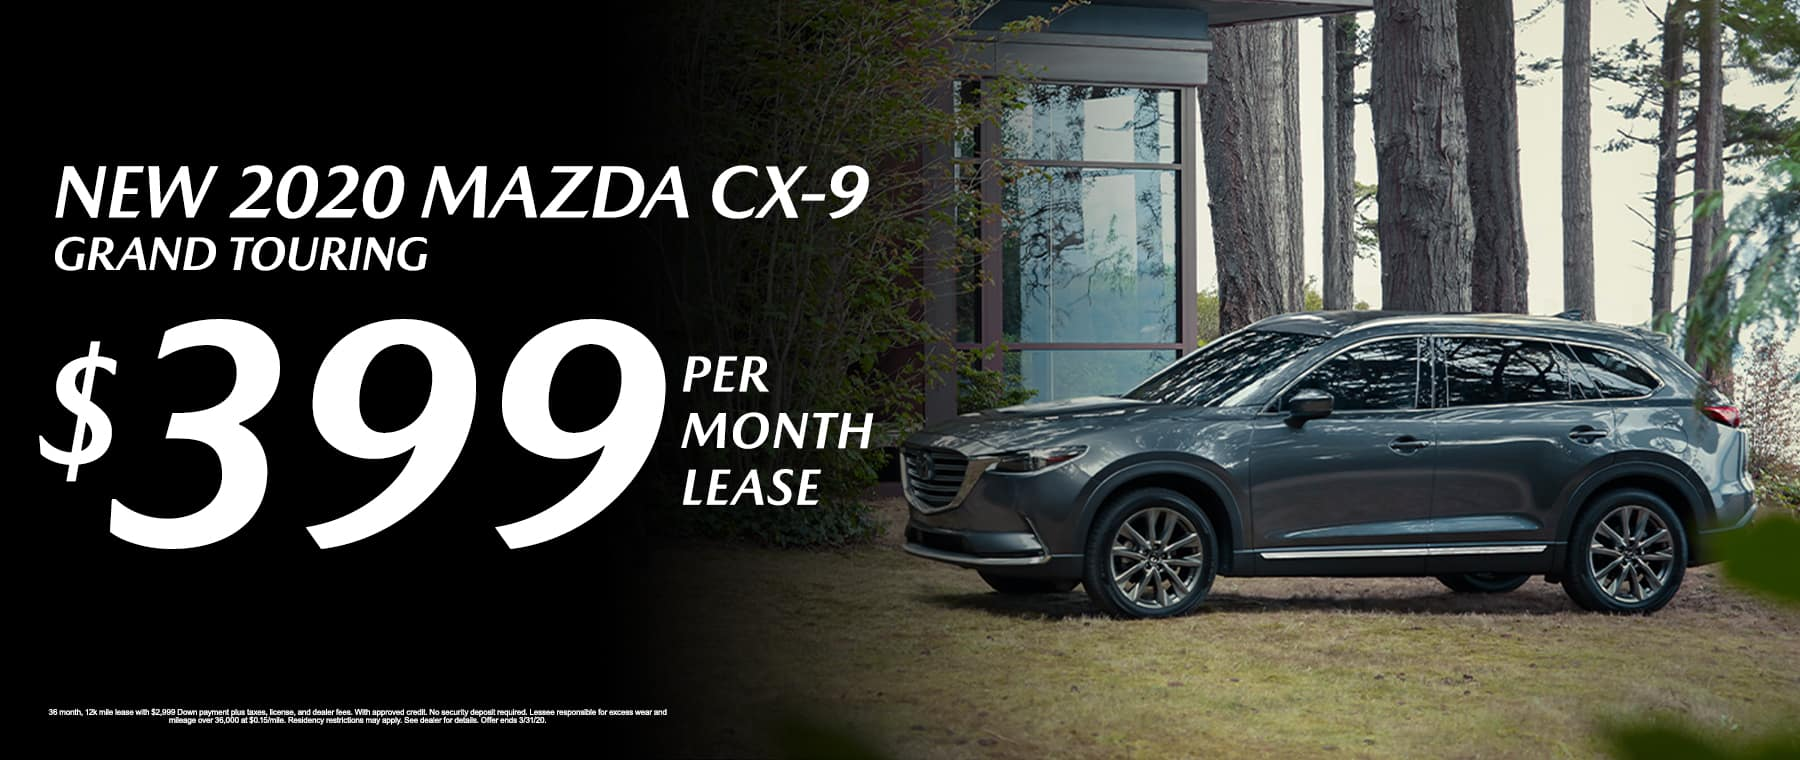 New 2020 Mazda CX-9 Grand Touring Lease for $399/mo.